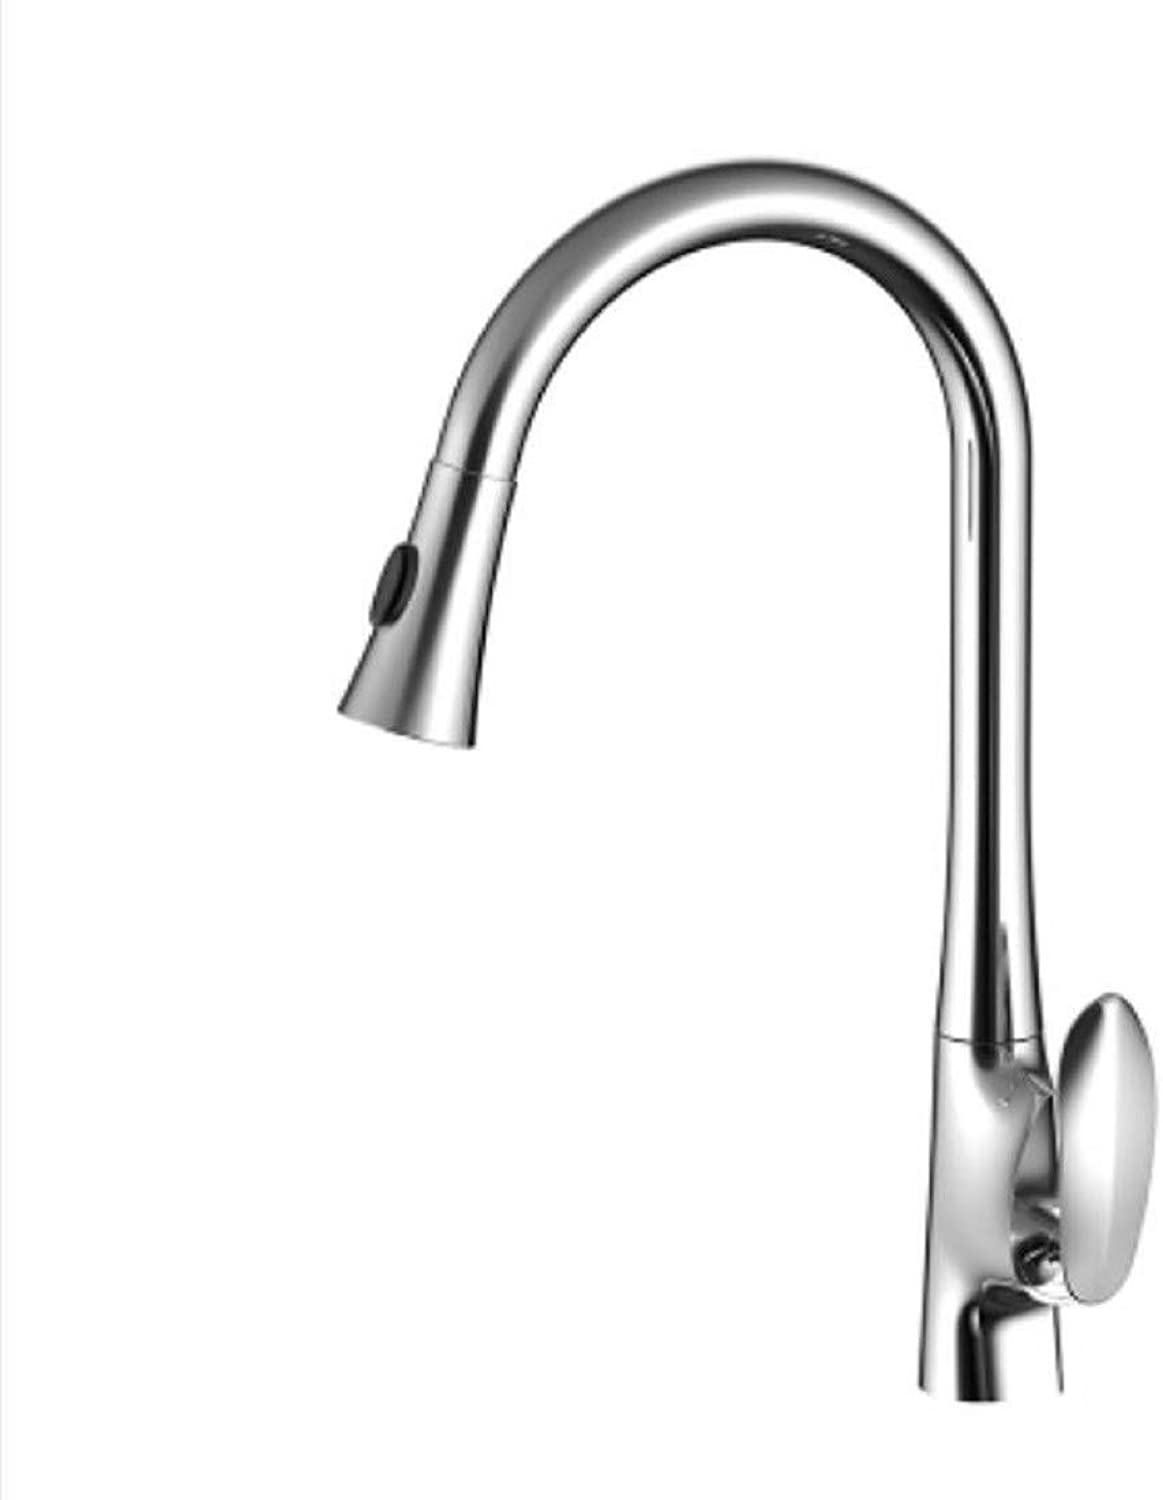 Kitchen Tap Copper Faucet Art Creative Pull-Out Scalable Kitchen Washpot Cold Tropical Flower Sprinkler Fashion Personal Faucet Kitchen Taps Kitchen Sink Mixer Taps Basin Tap